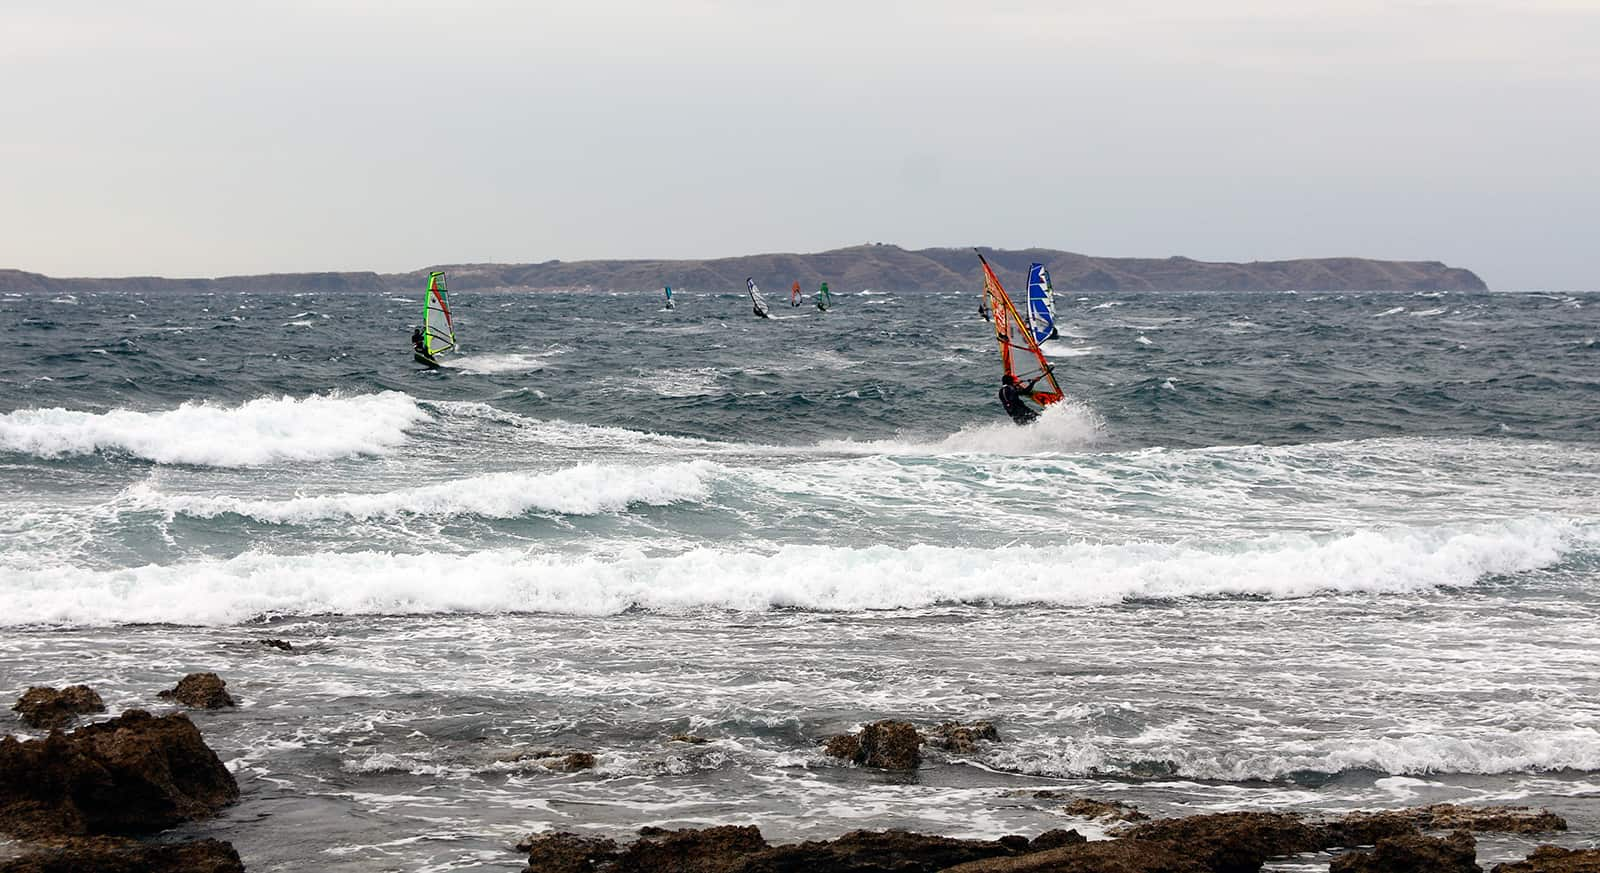 Usually sharing a spot with windsurfers is not a good sign.